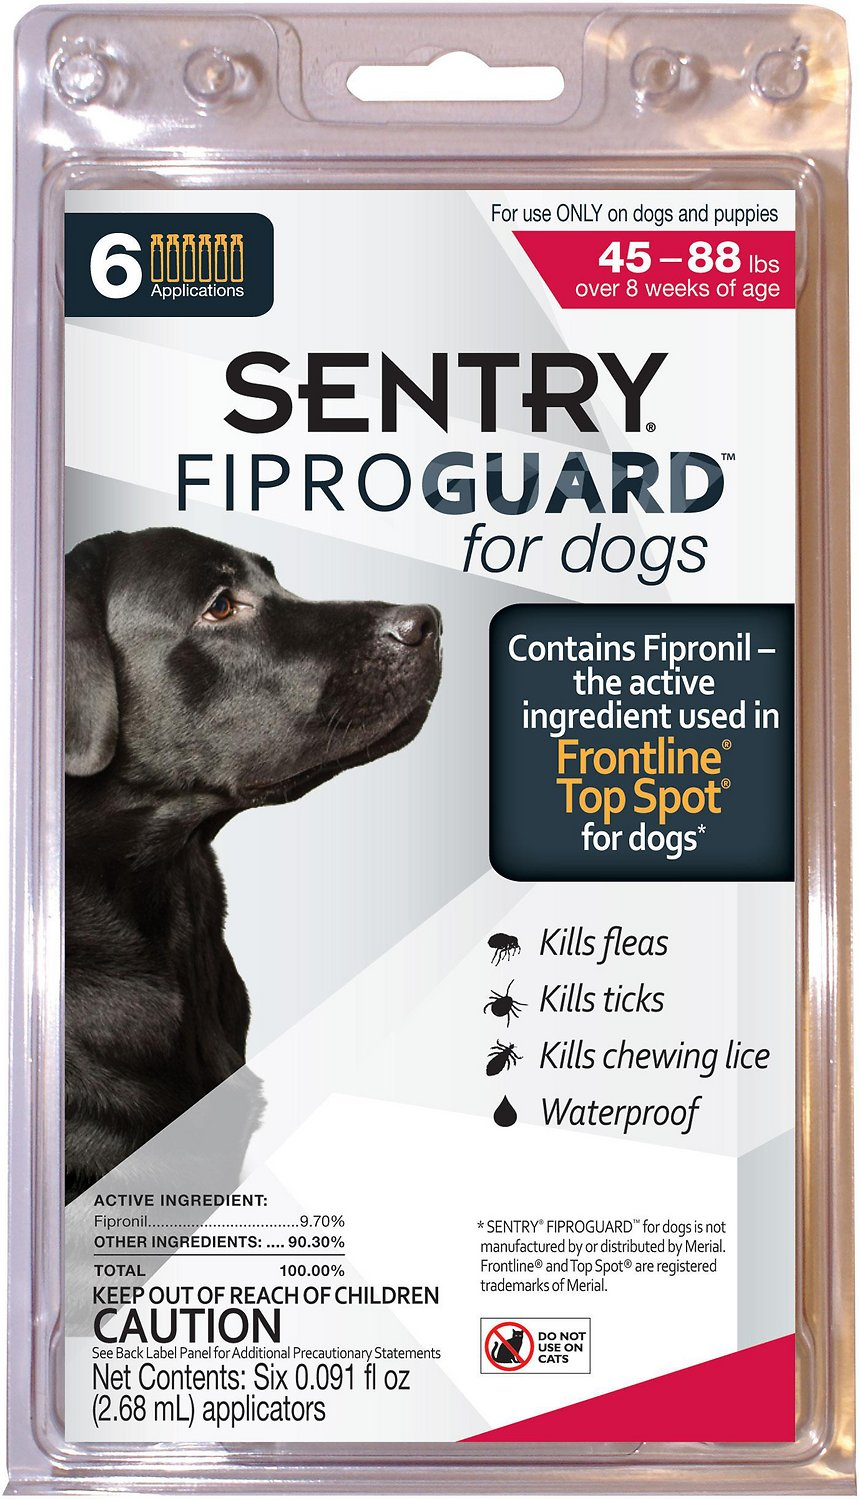 Sentry FiproGuard Flea & Tick Squeeze-On for Dogs (45-88 lbs)